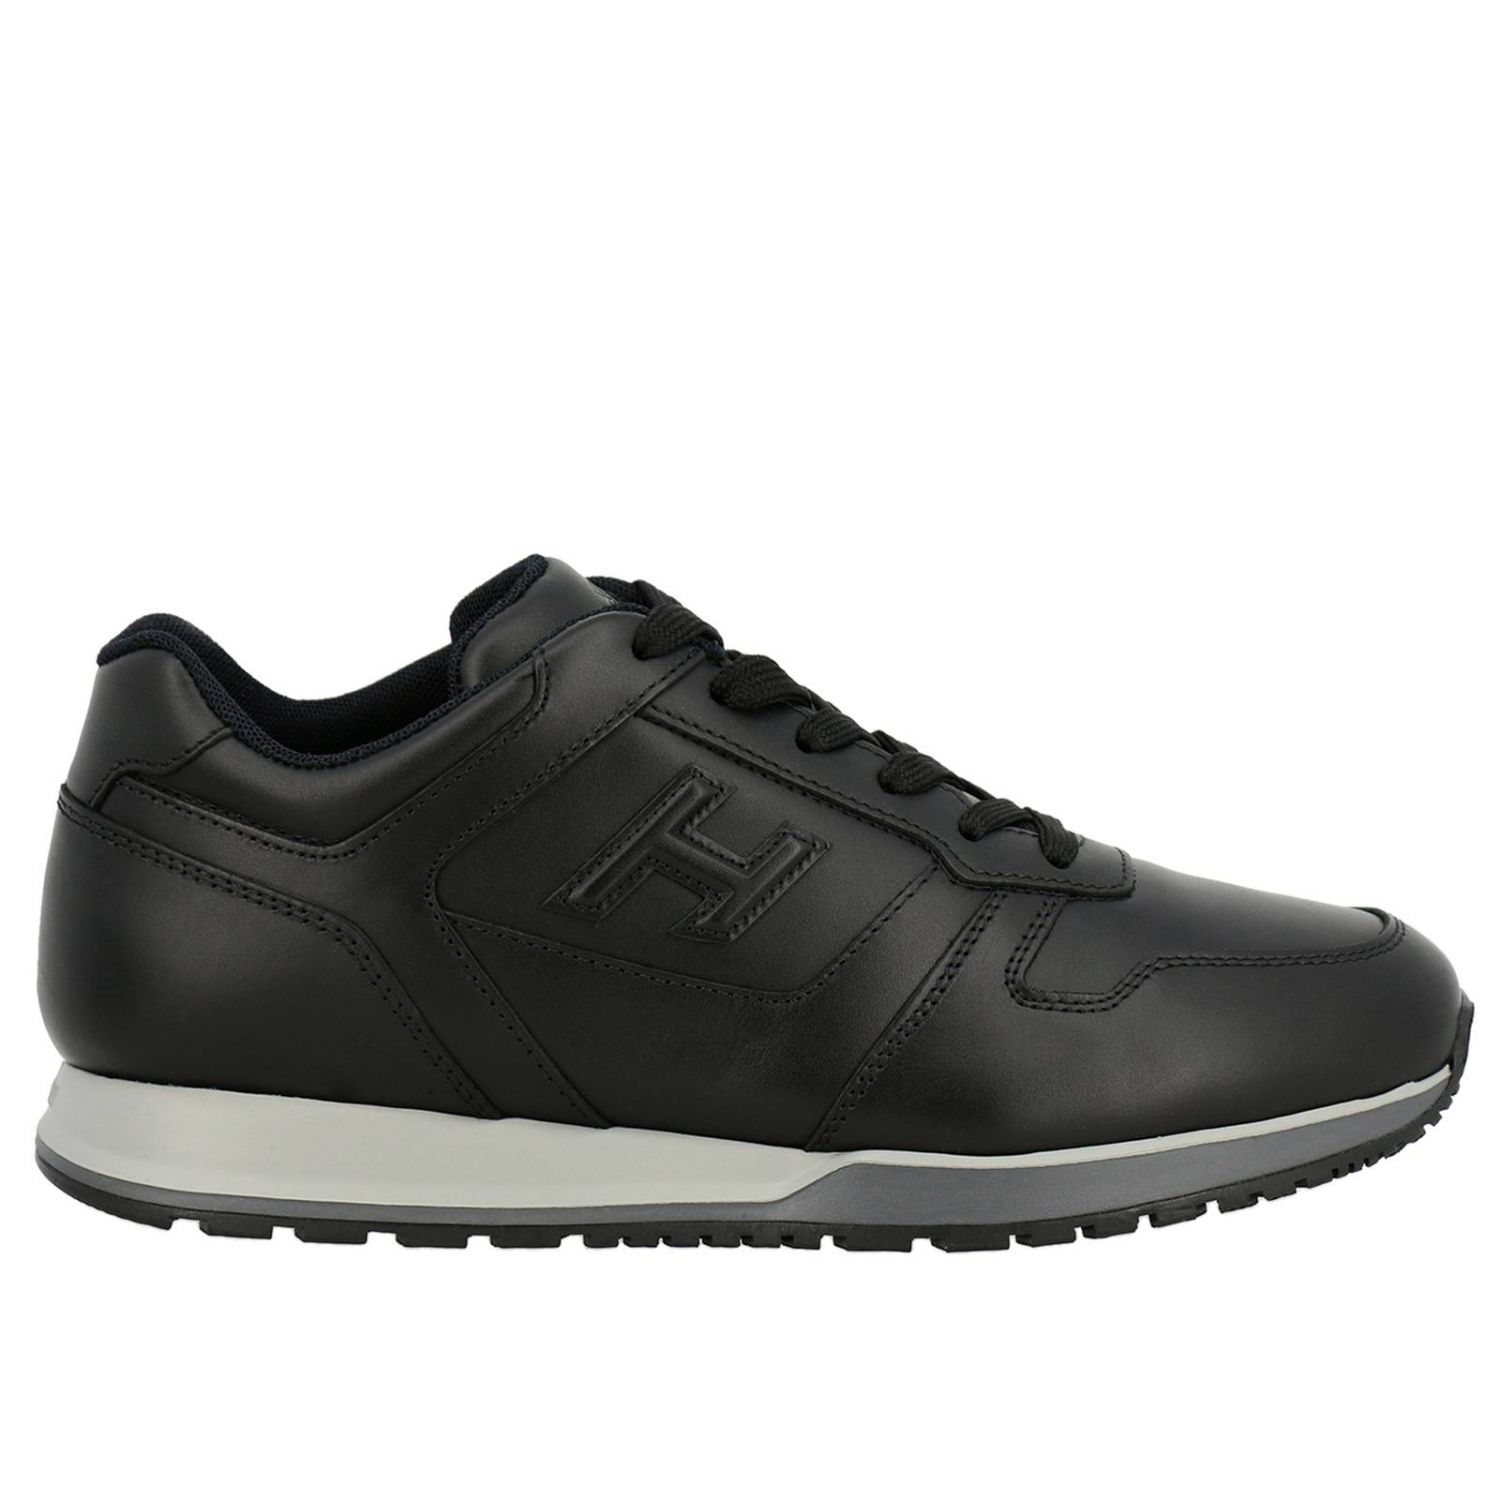 Sneakers Rebel 321 in pelle con H in 3D nero 1